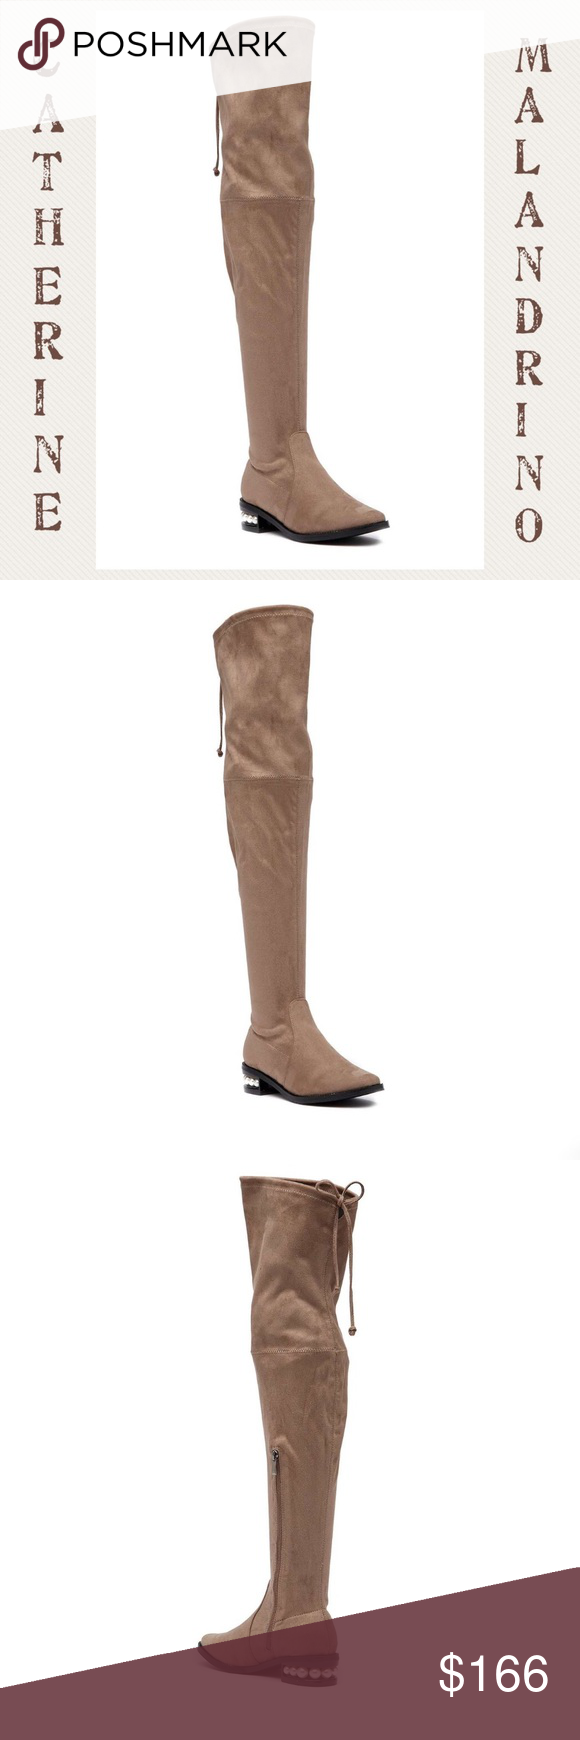 e70f661eb67 Catherine Malandrino Perse Over Knee Boot Sz 8 NWT Catherine Malandrino  Perse Over Knee Boots - Size 8 -  NWT  - Box Included - Taupe Color - On  Trend Look ...